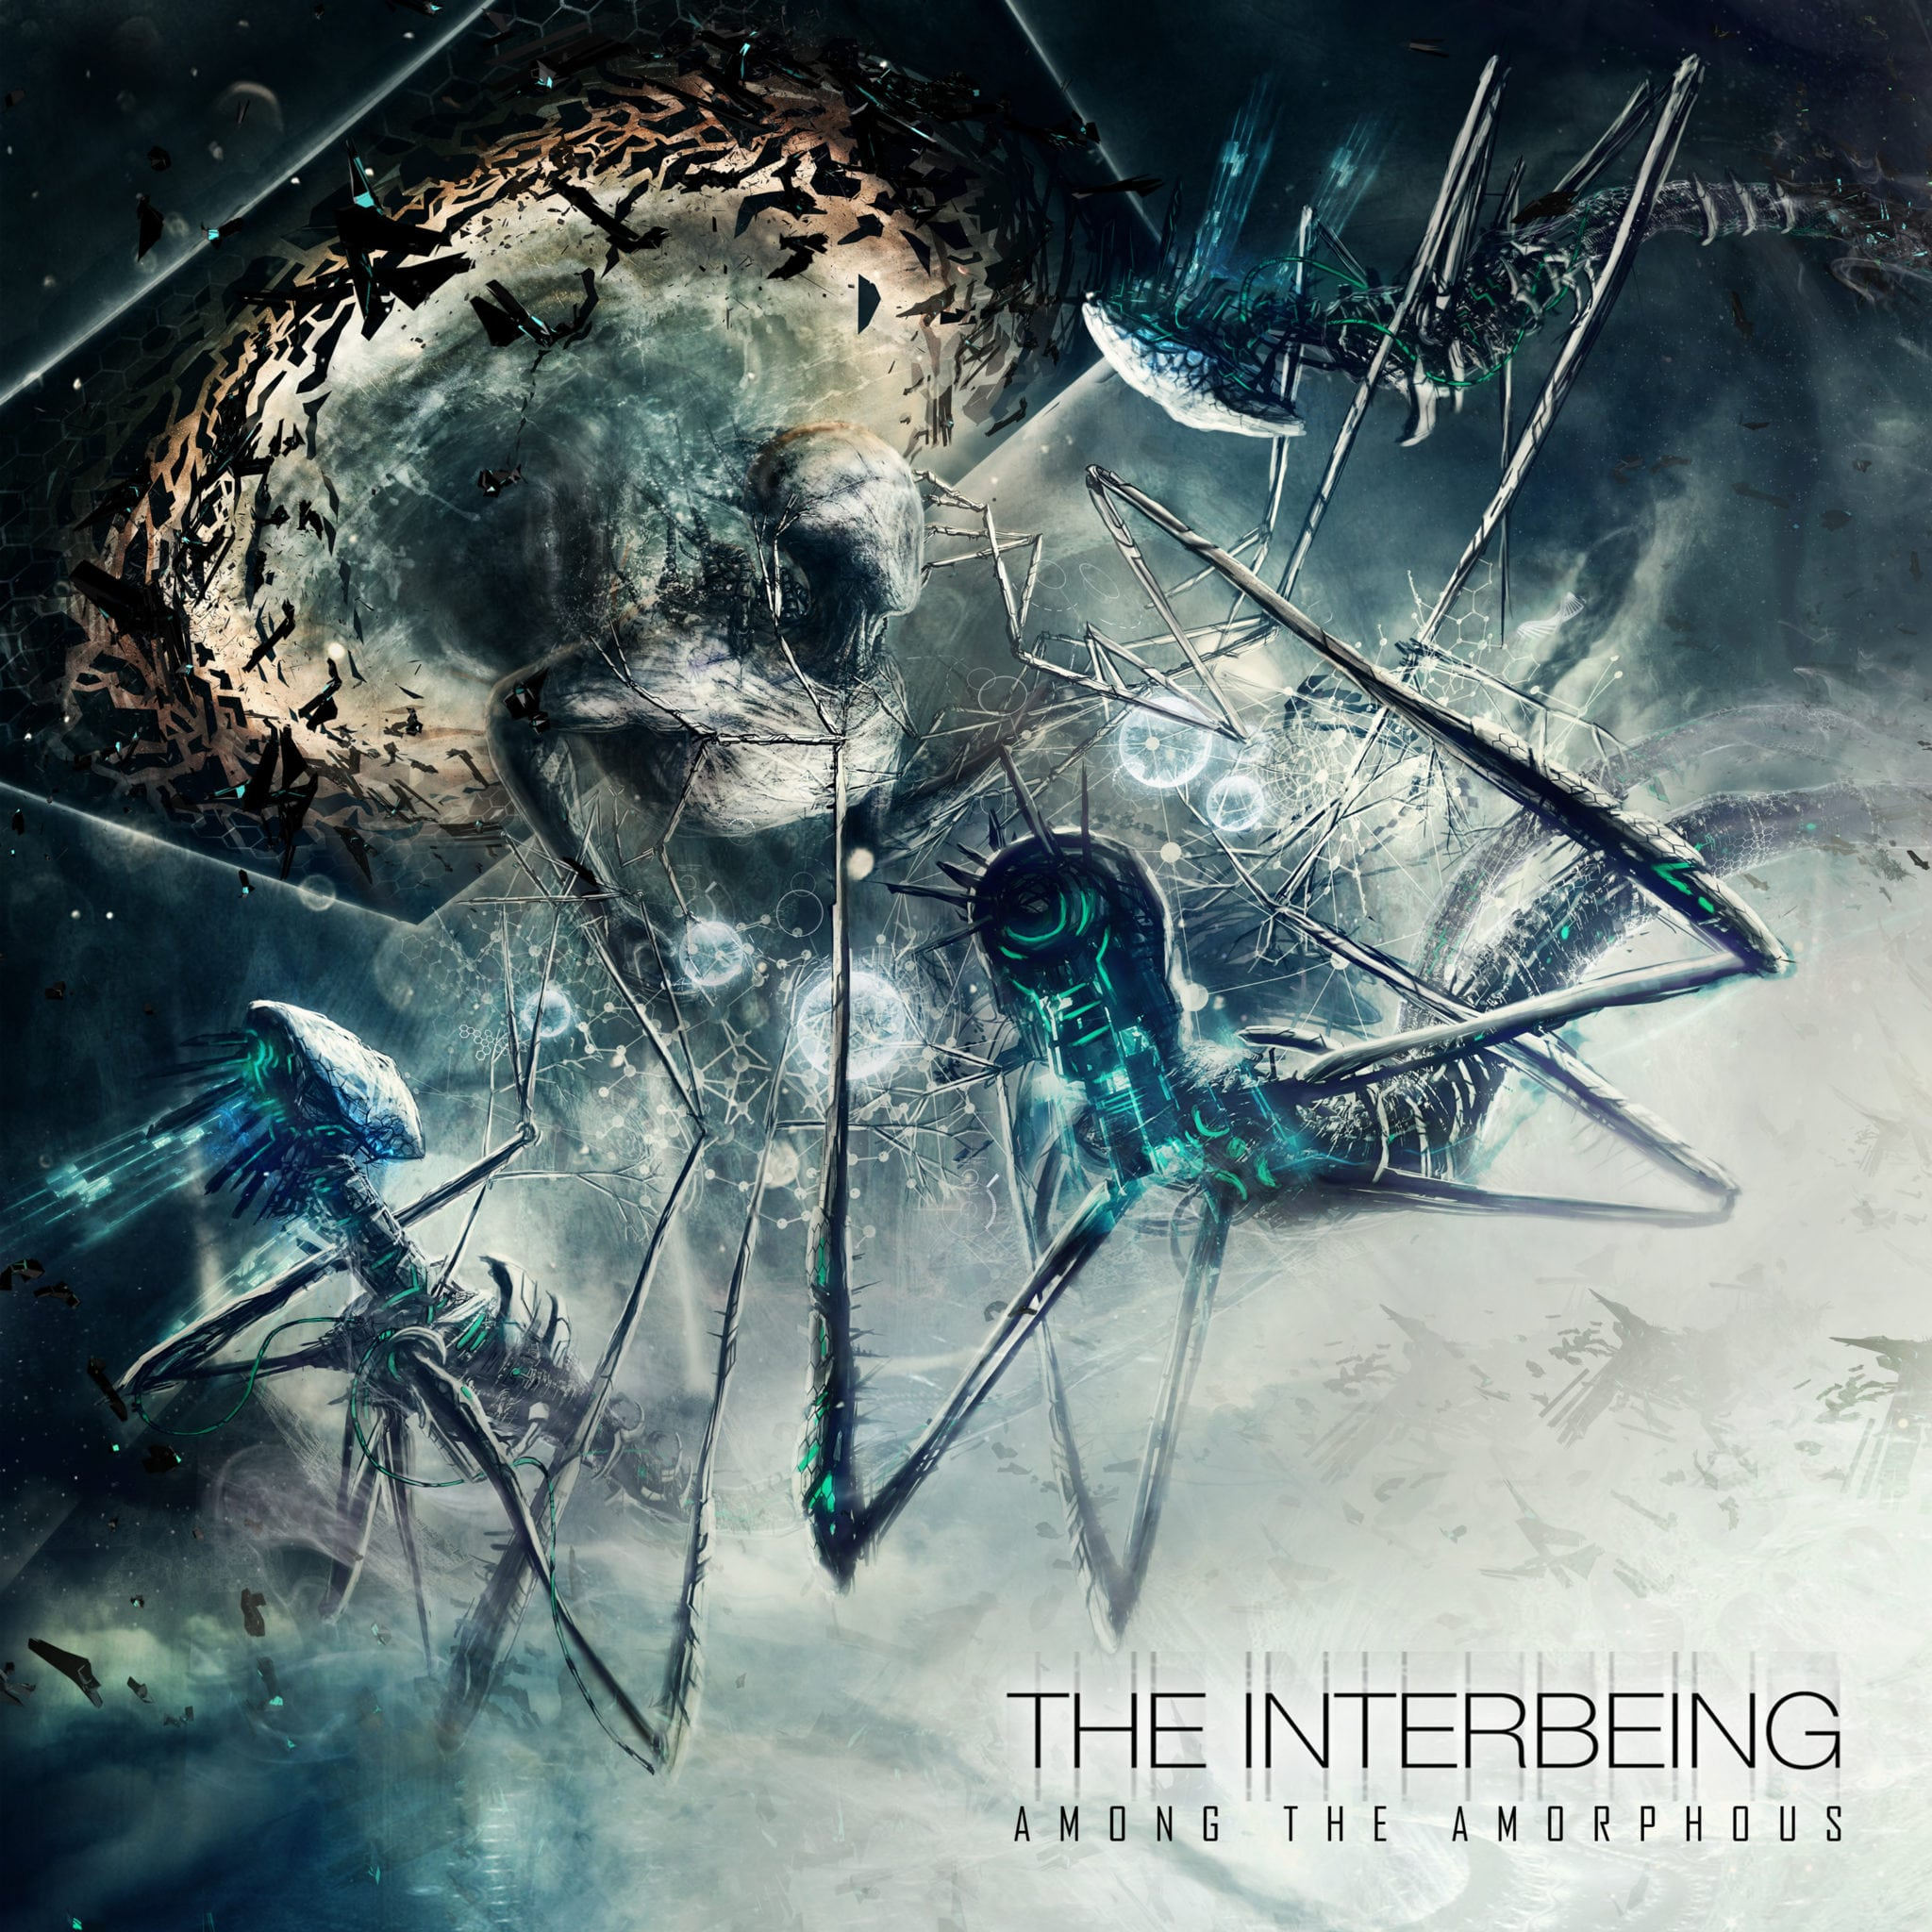 The Interbeings industrielle revolution